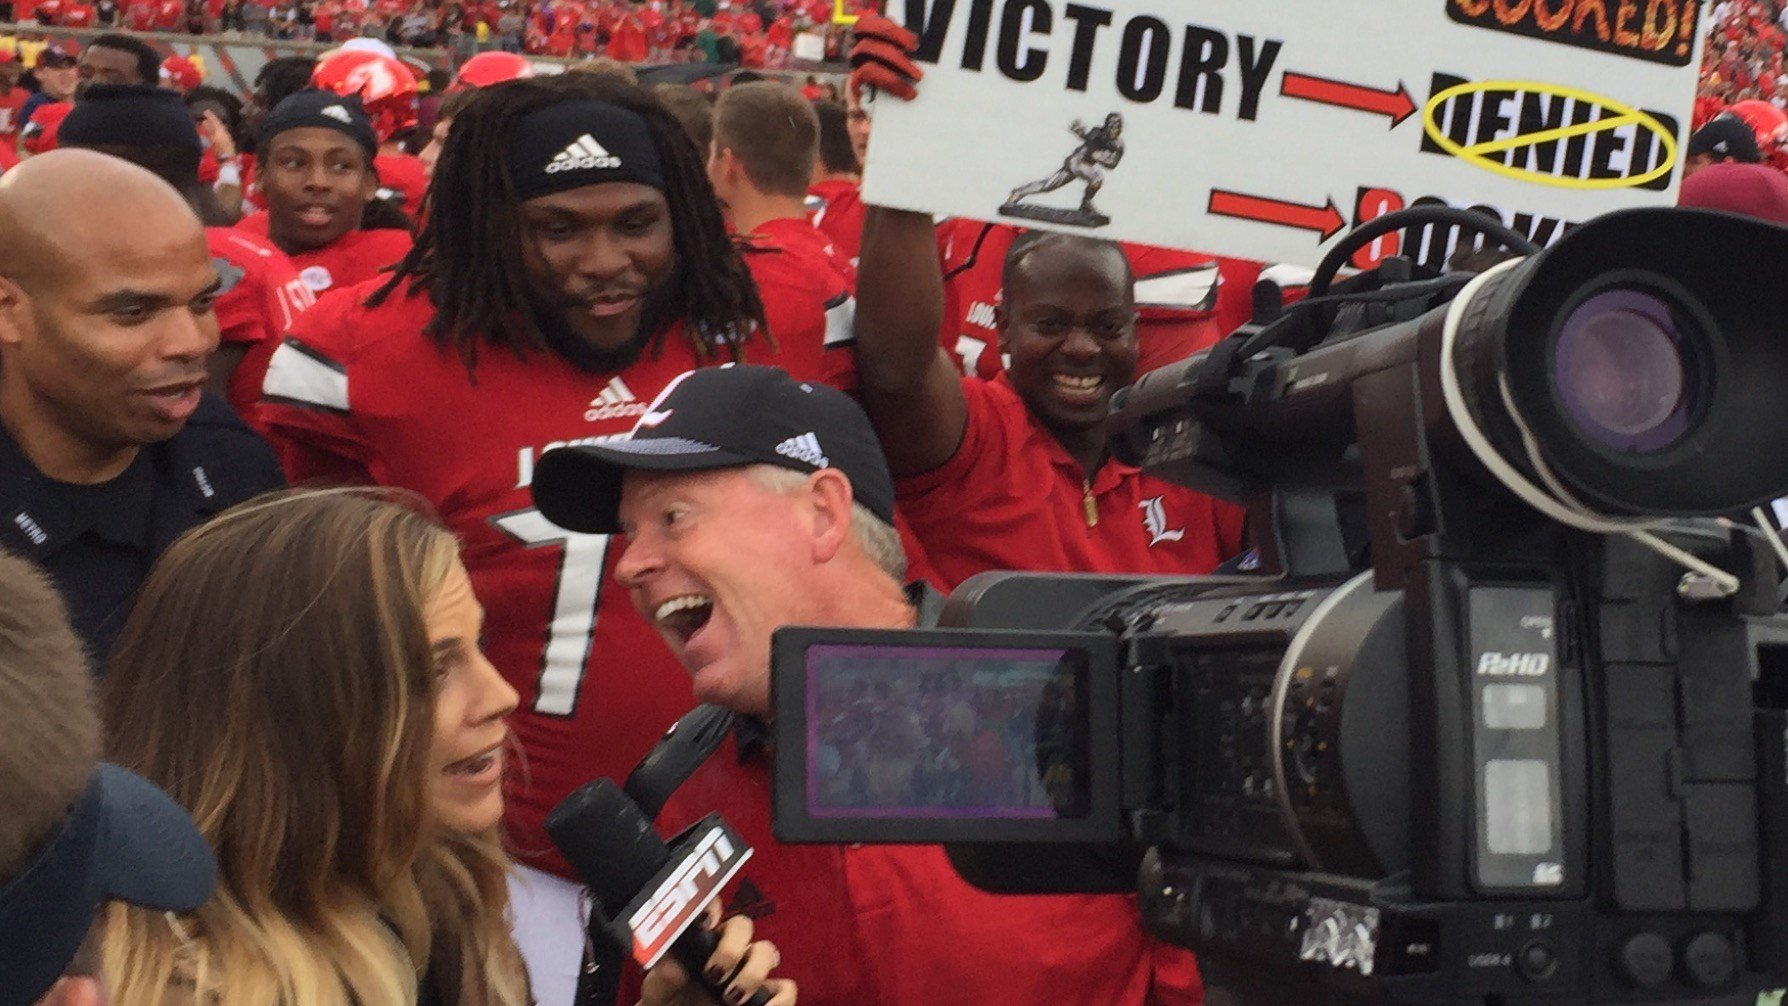 Louisville football coach Bobby Petrino enjoyed the Cardinals' jumbo win over Florida State Saturday.